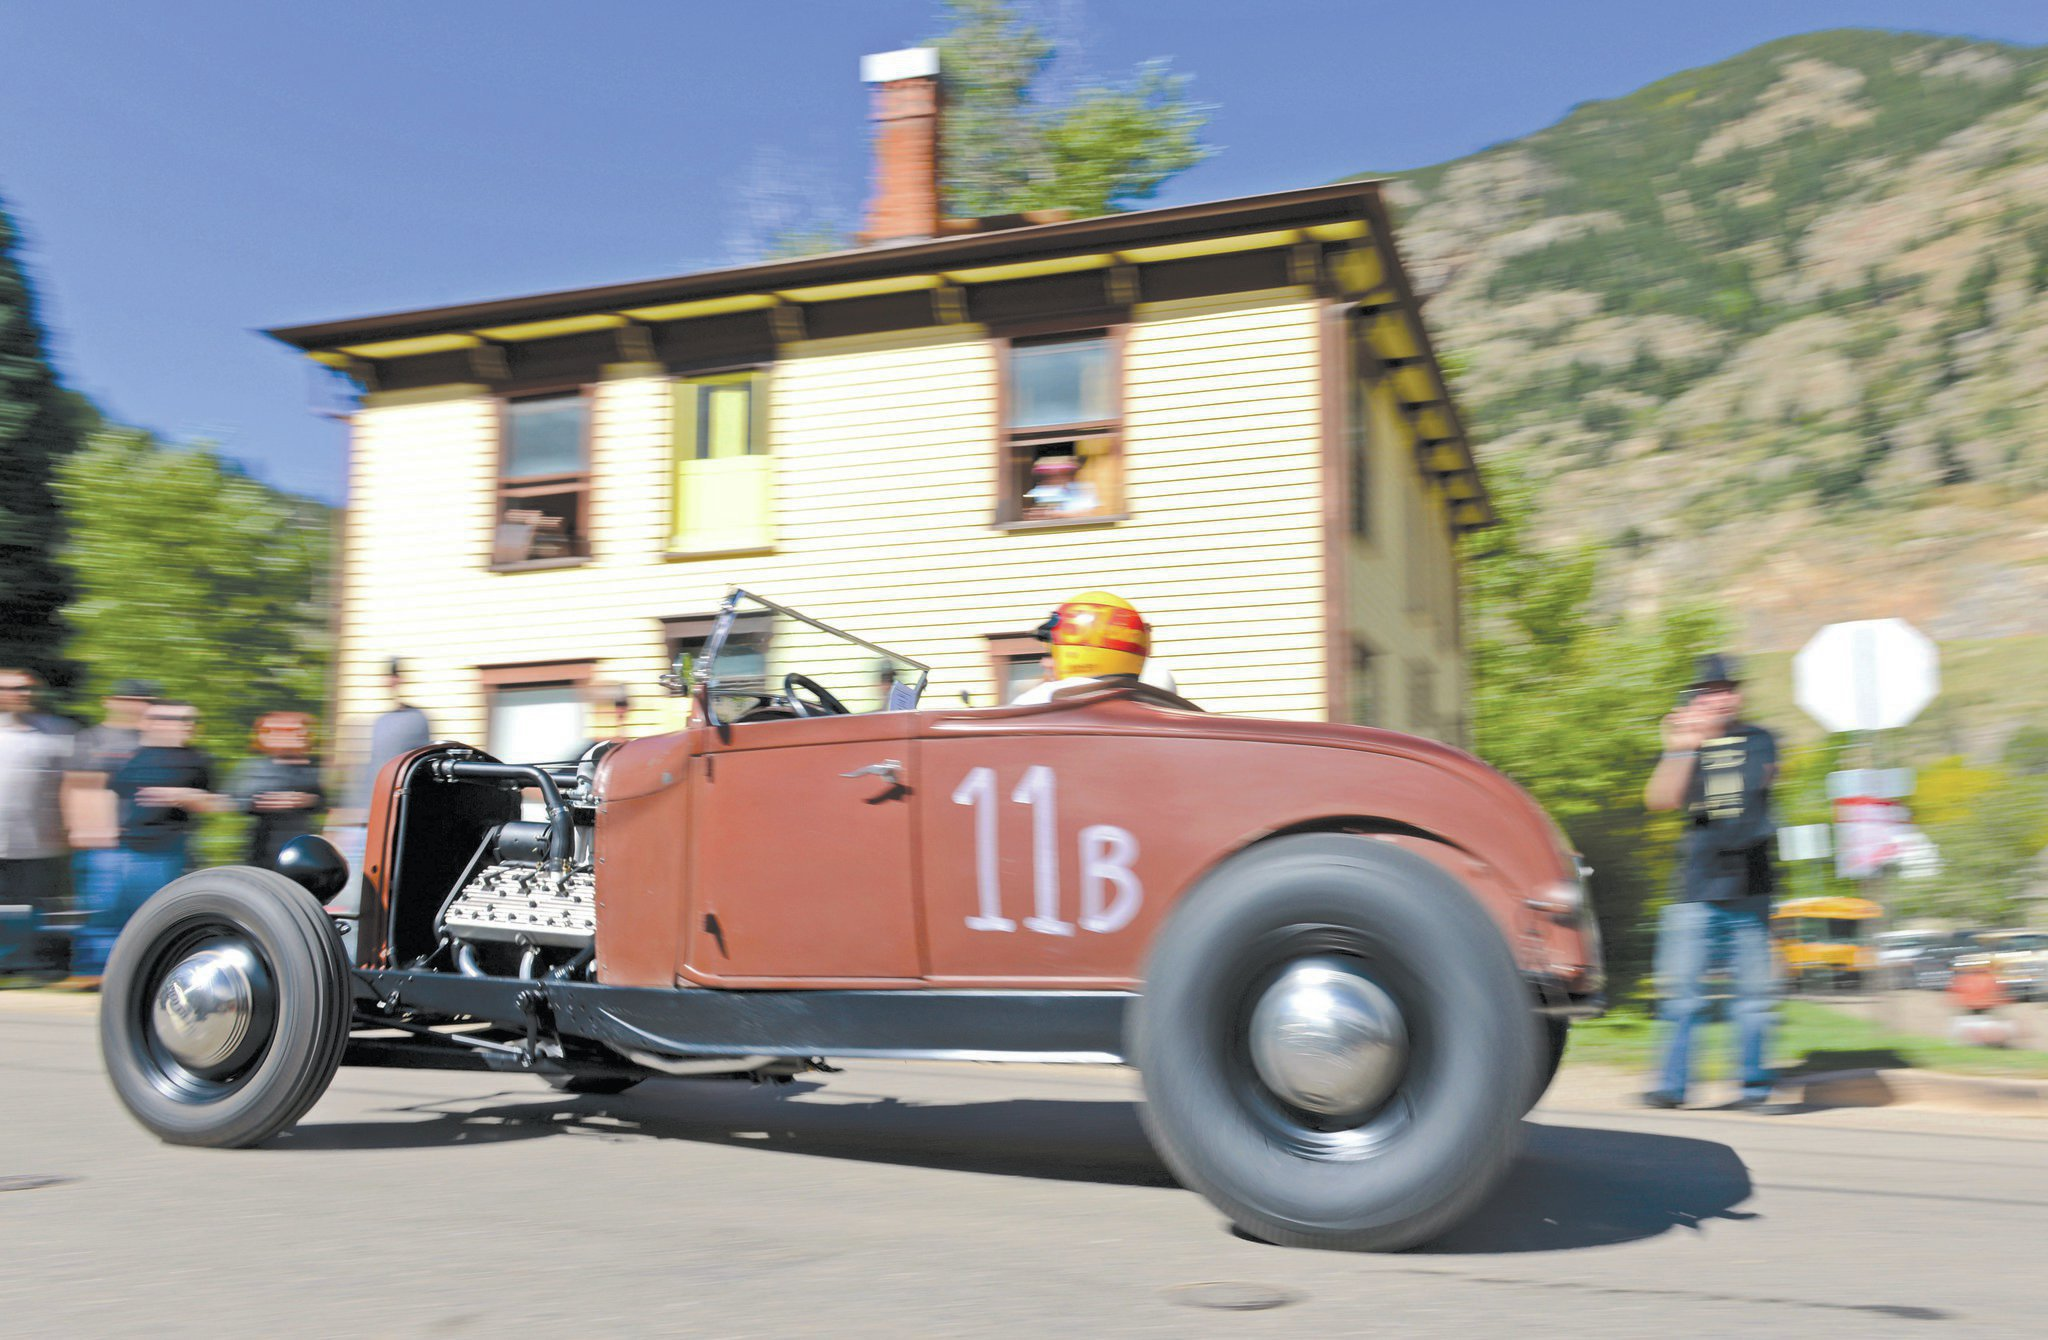 Mark Briggs of Watkins, Colorado, pilots his car down Rose Street on his way to the first 90-degree turn at the base of Leavenworth Mountain. His '29 roadster is built on a '32 frame and equipped with a 59A flathead with Sharp heads, a Thickstun intake, a '39 trans, and an early Halibrand quick-change rear.